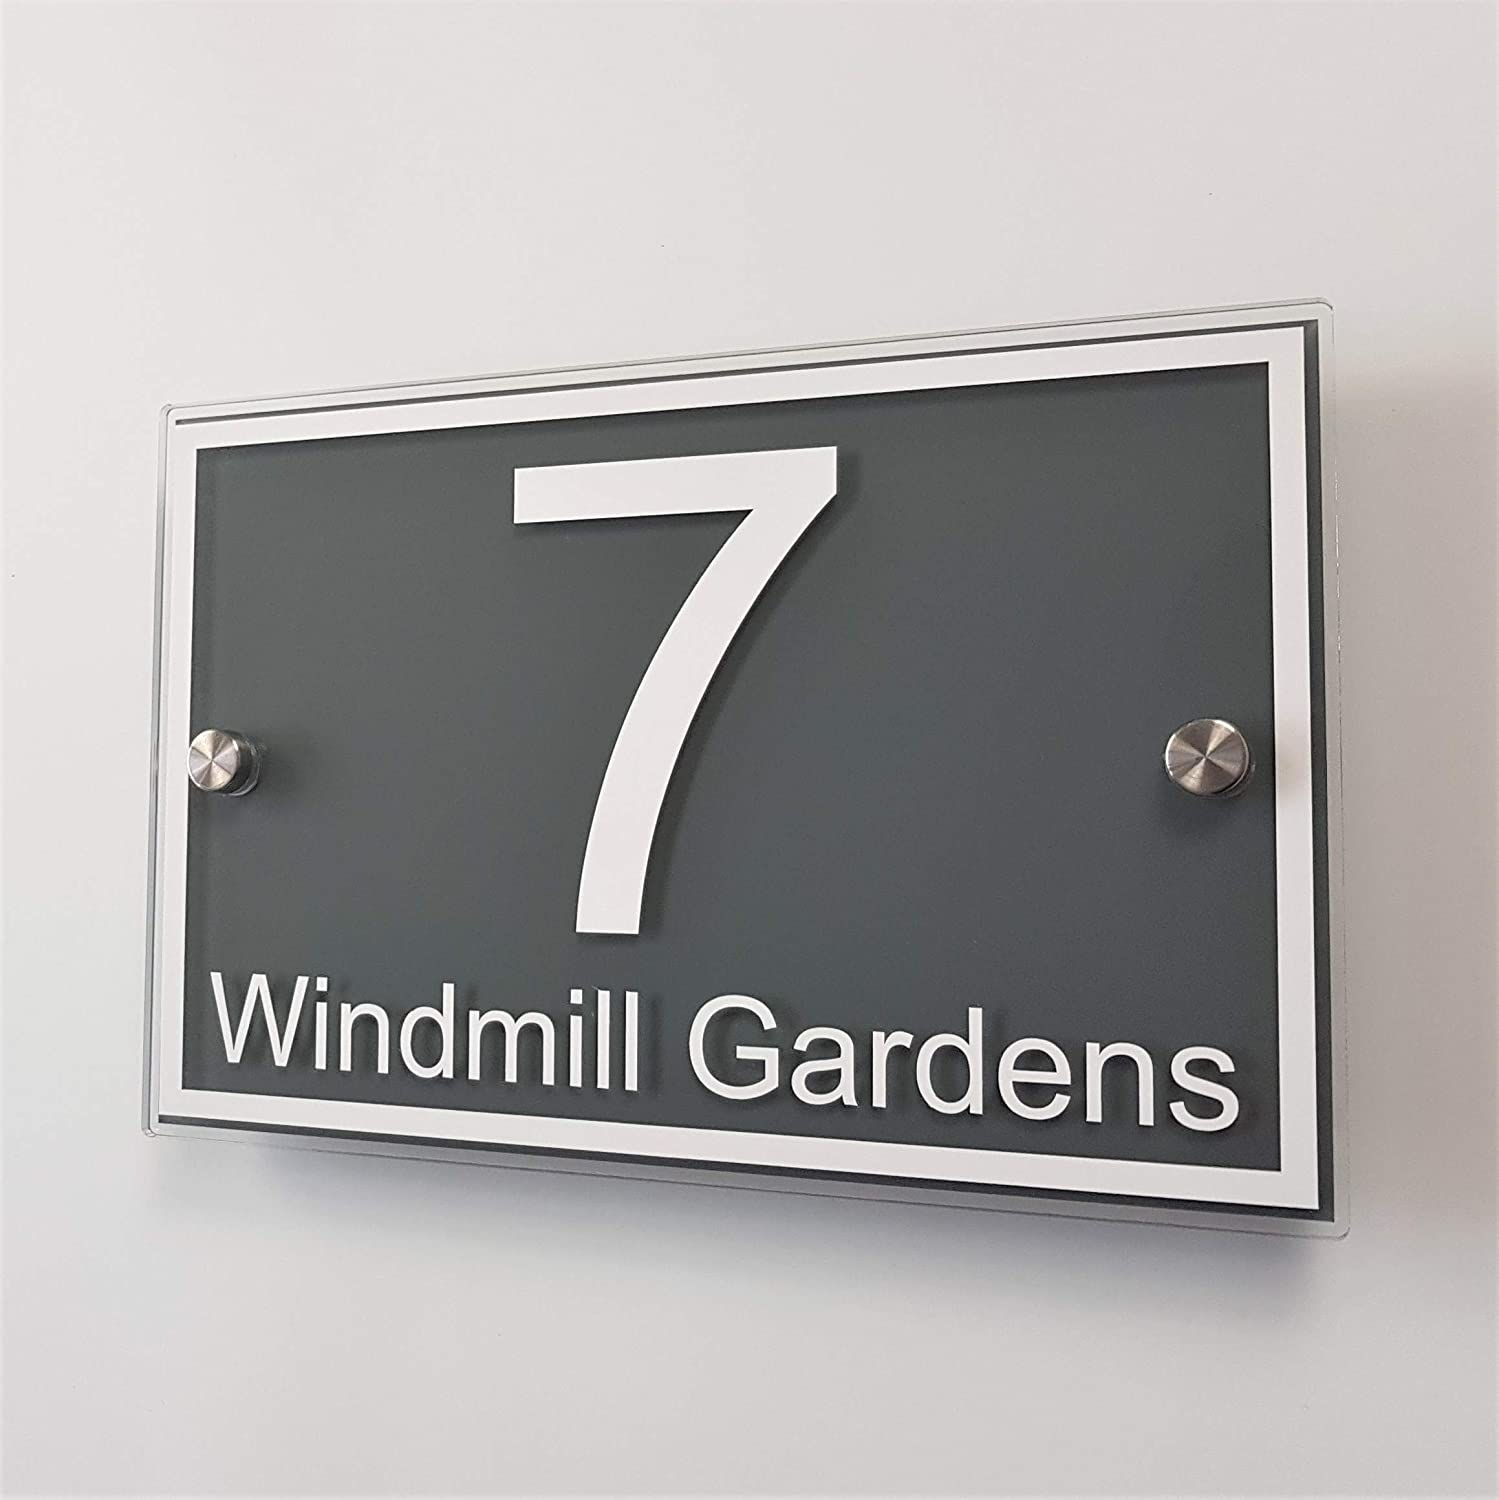 MODERN OVAL HOUSE NUMBER PLAQUE DOOR SIGN ADDRESS PLATE BUISNESS PROPERTY